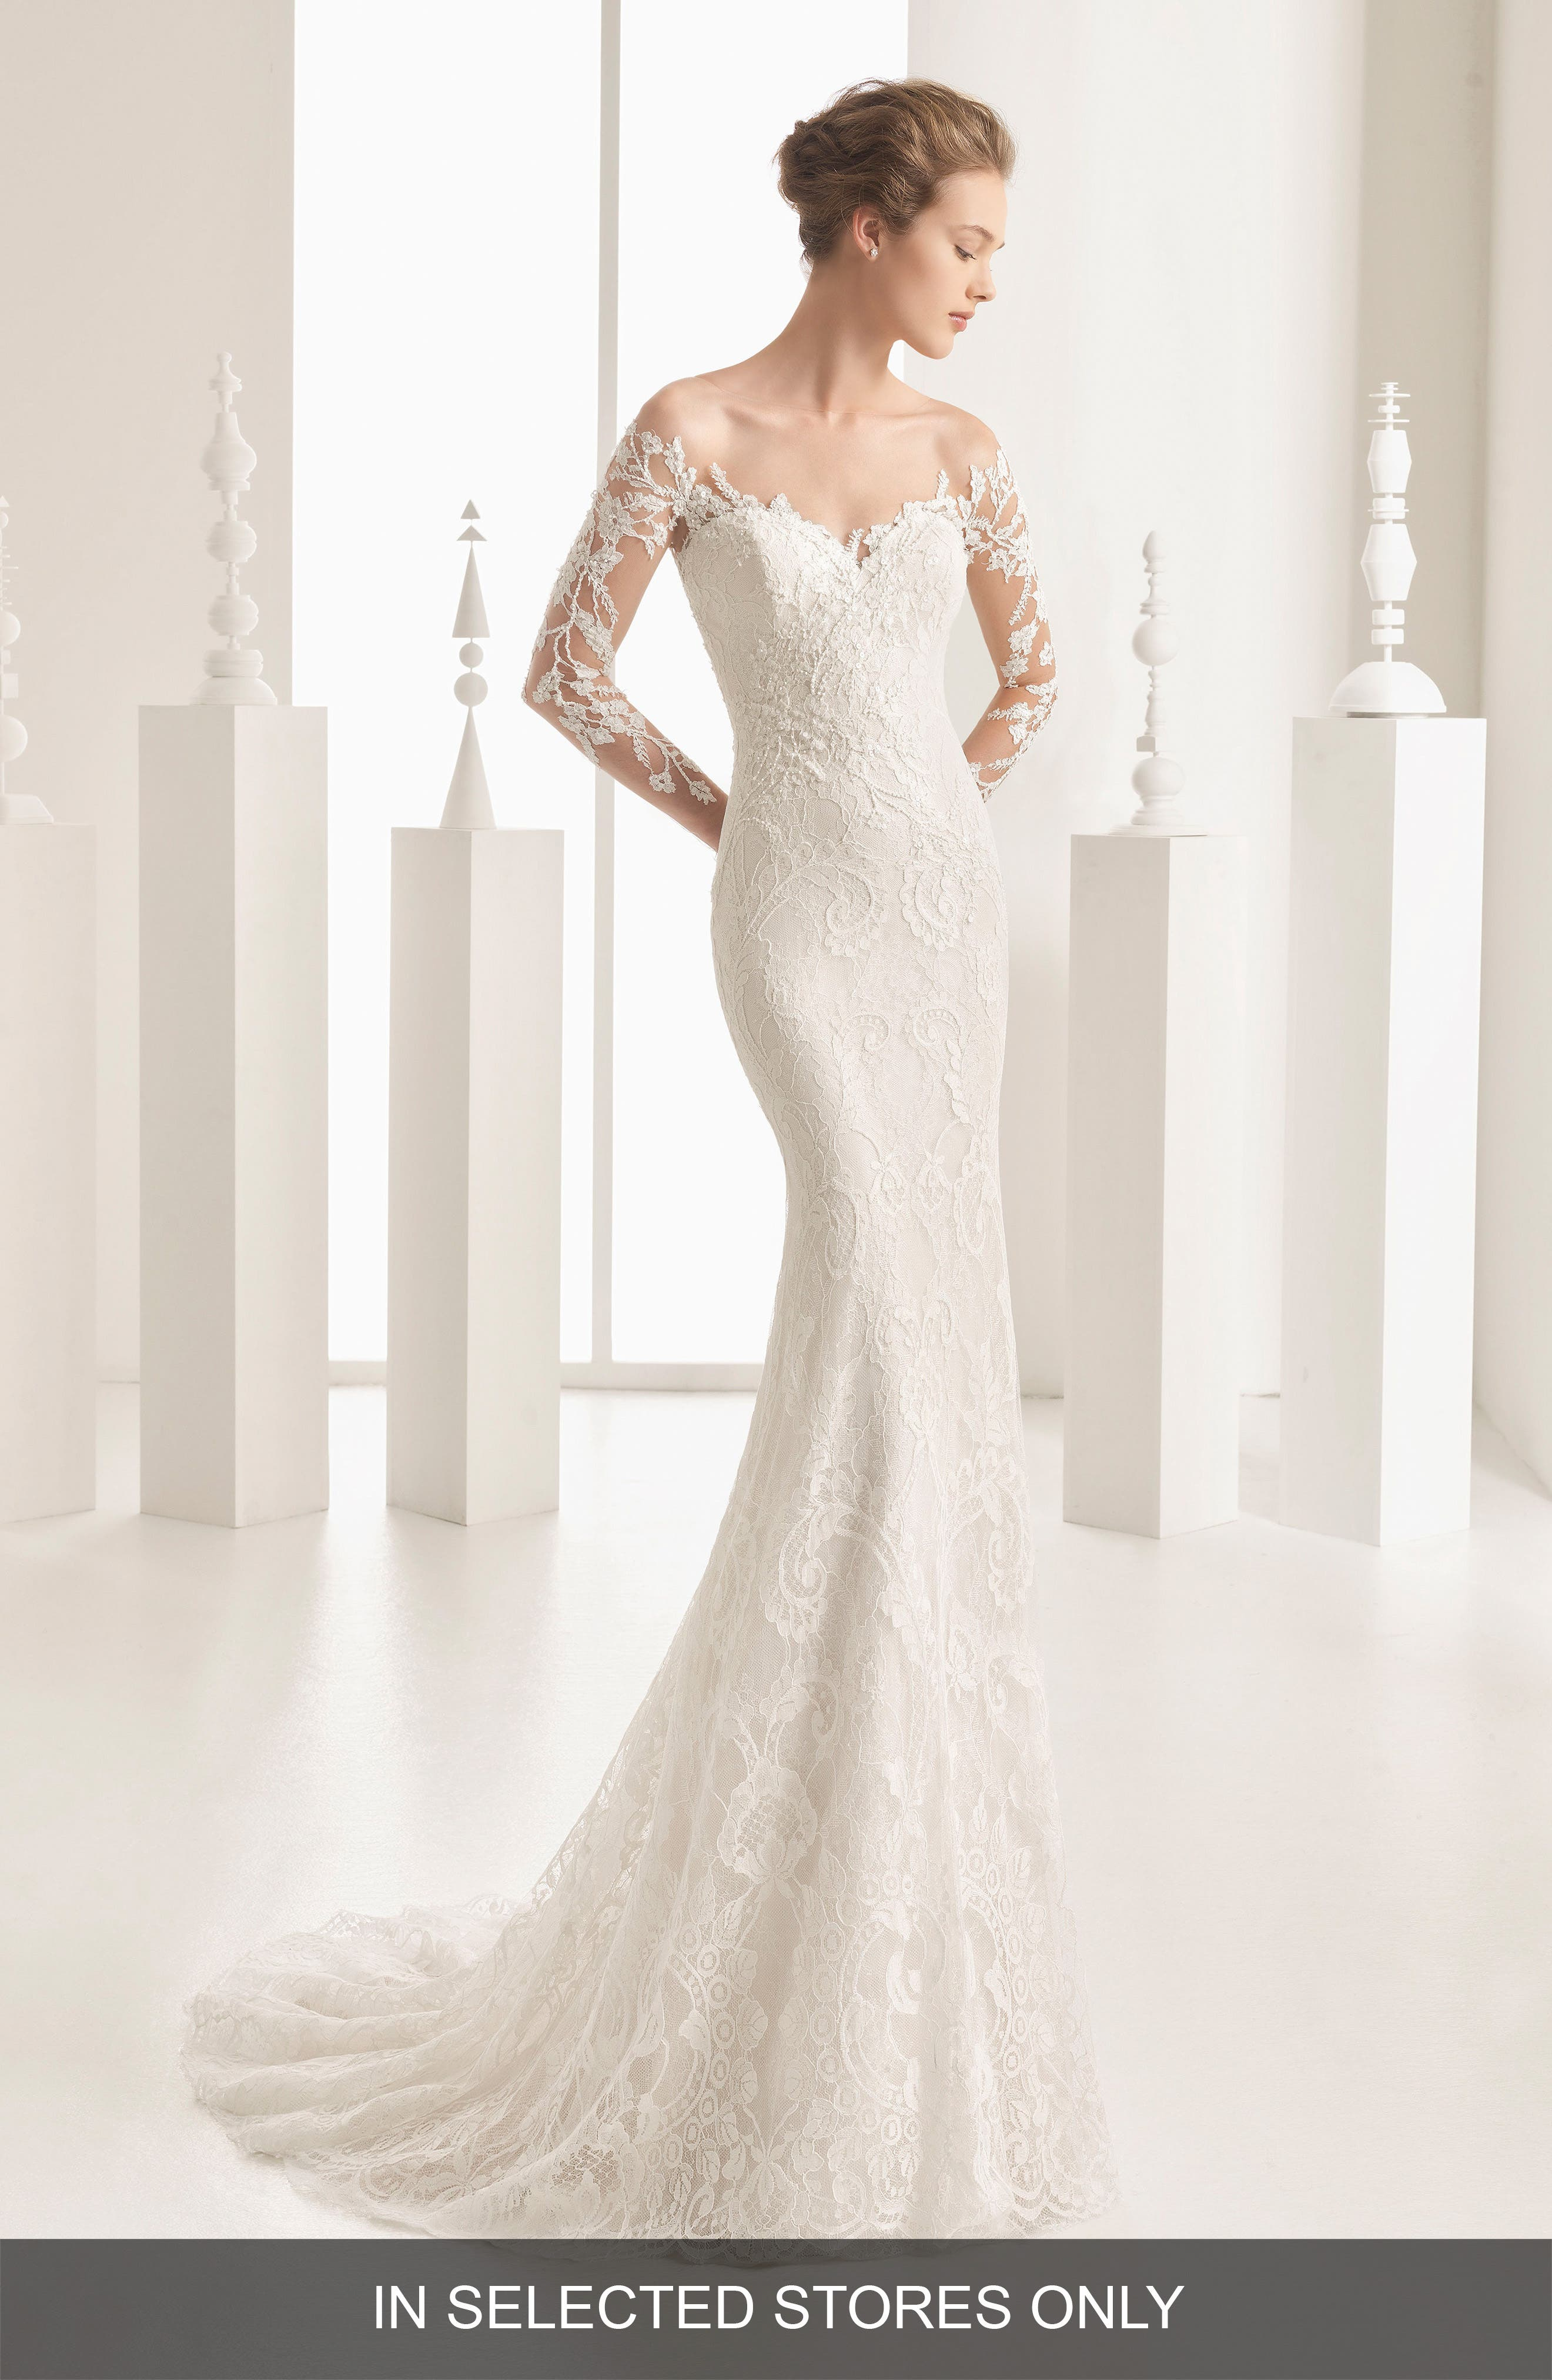 Naim Strapless Illusion Lace Mermaid Gown,                         Main,                         color, 900